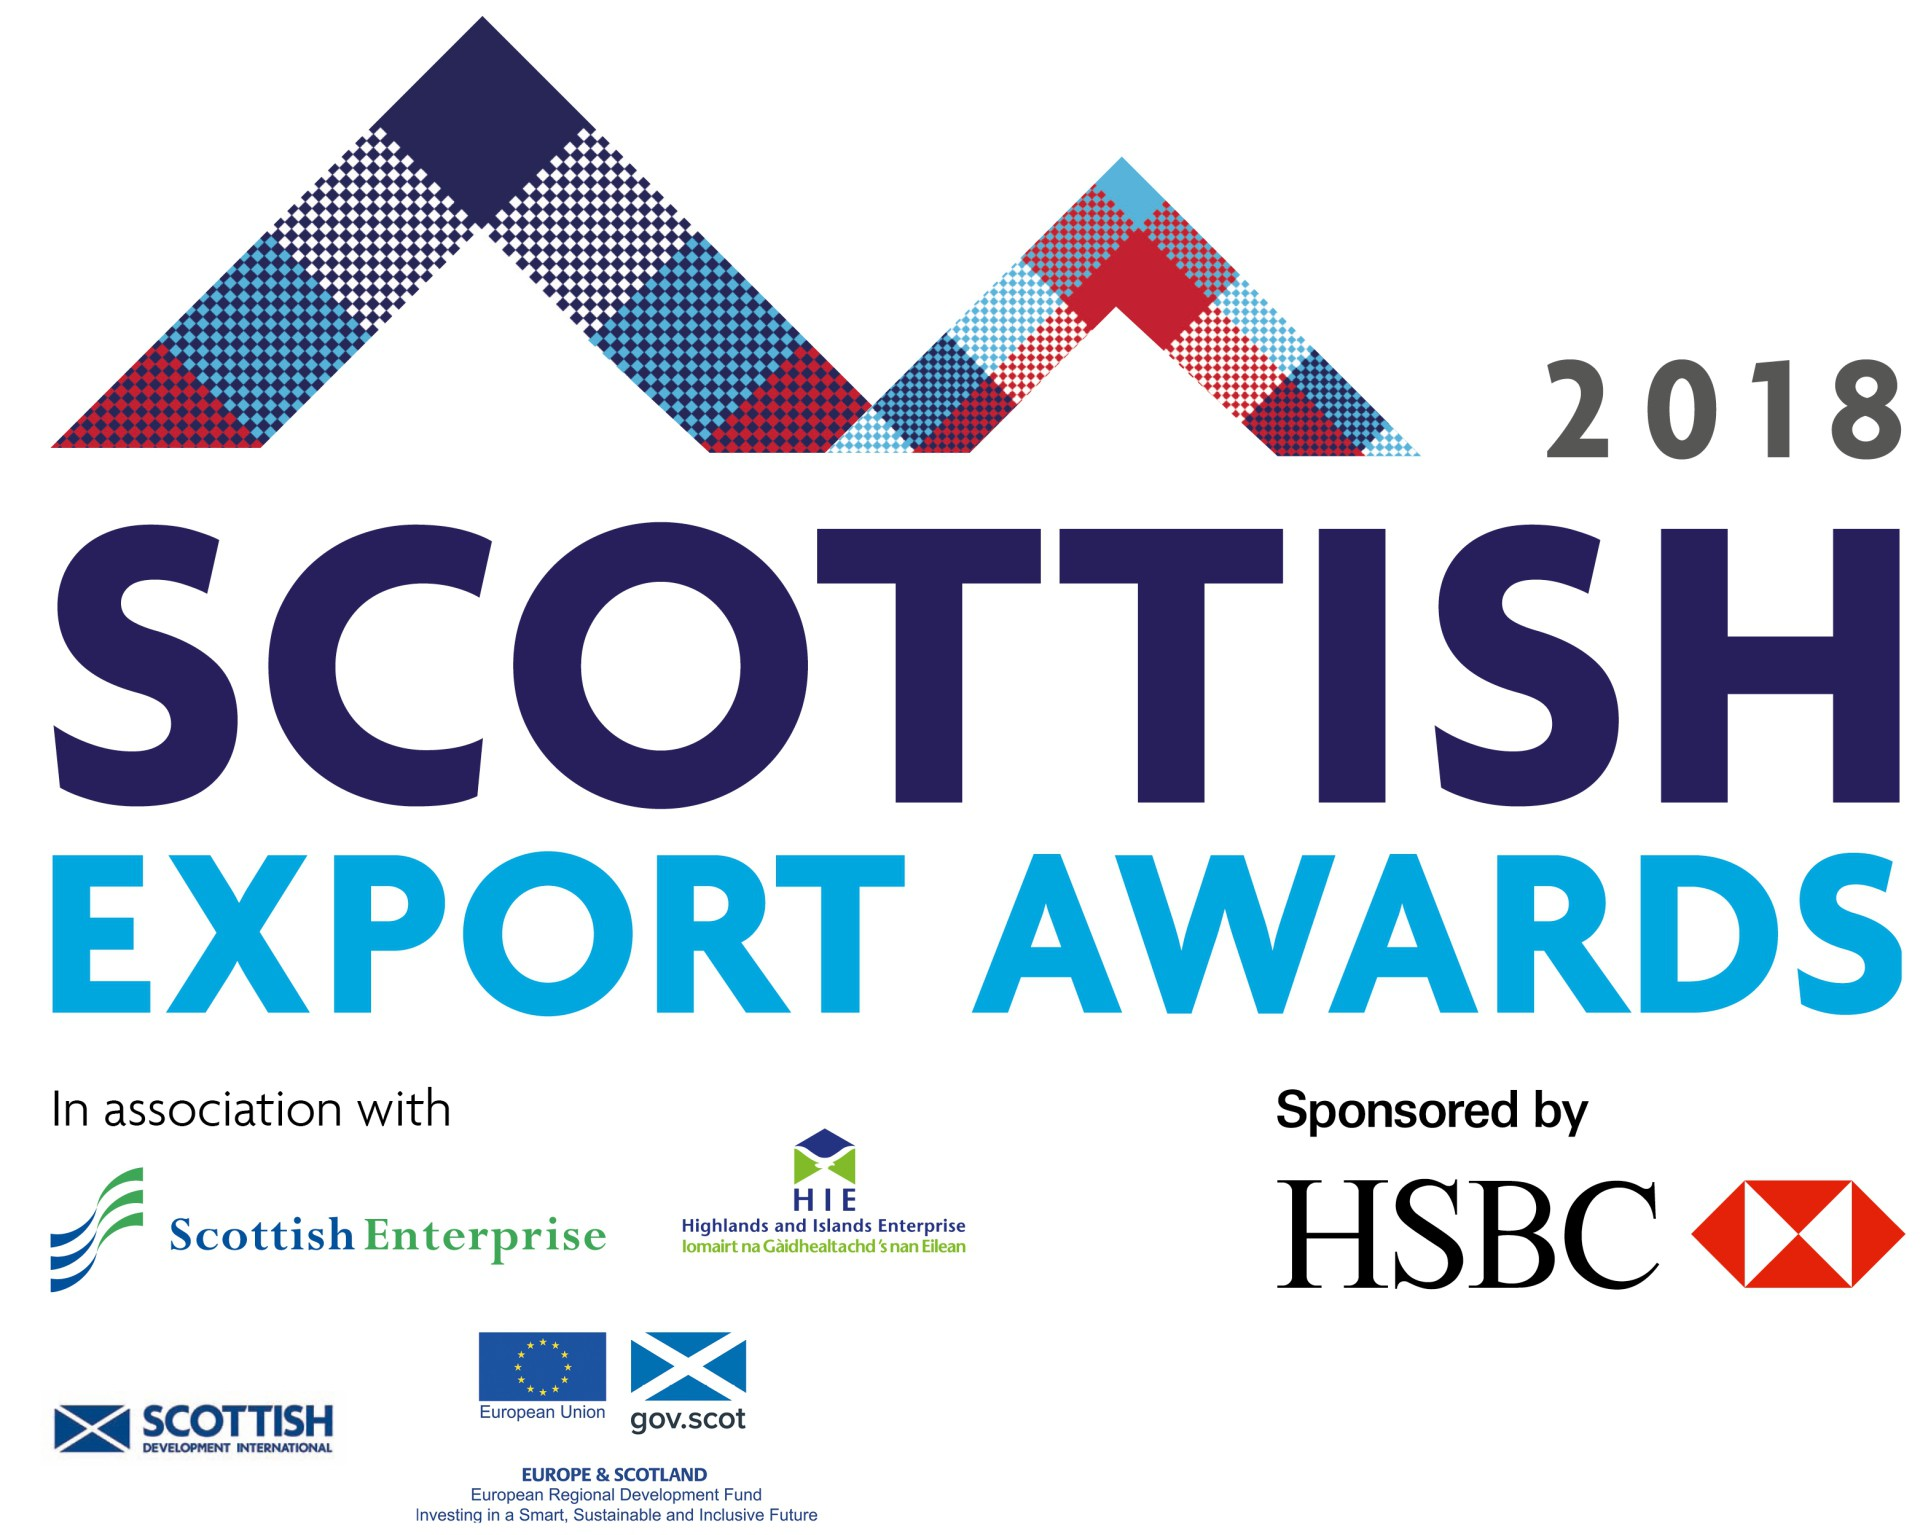 Shortlisted for The Scottish Export Awards